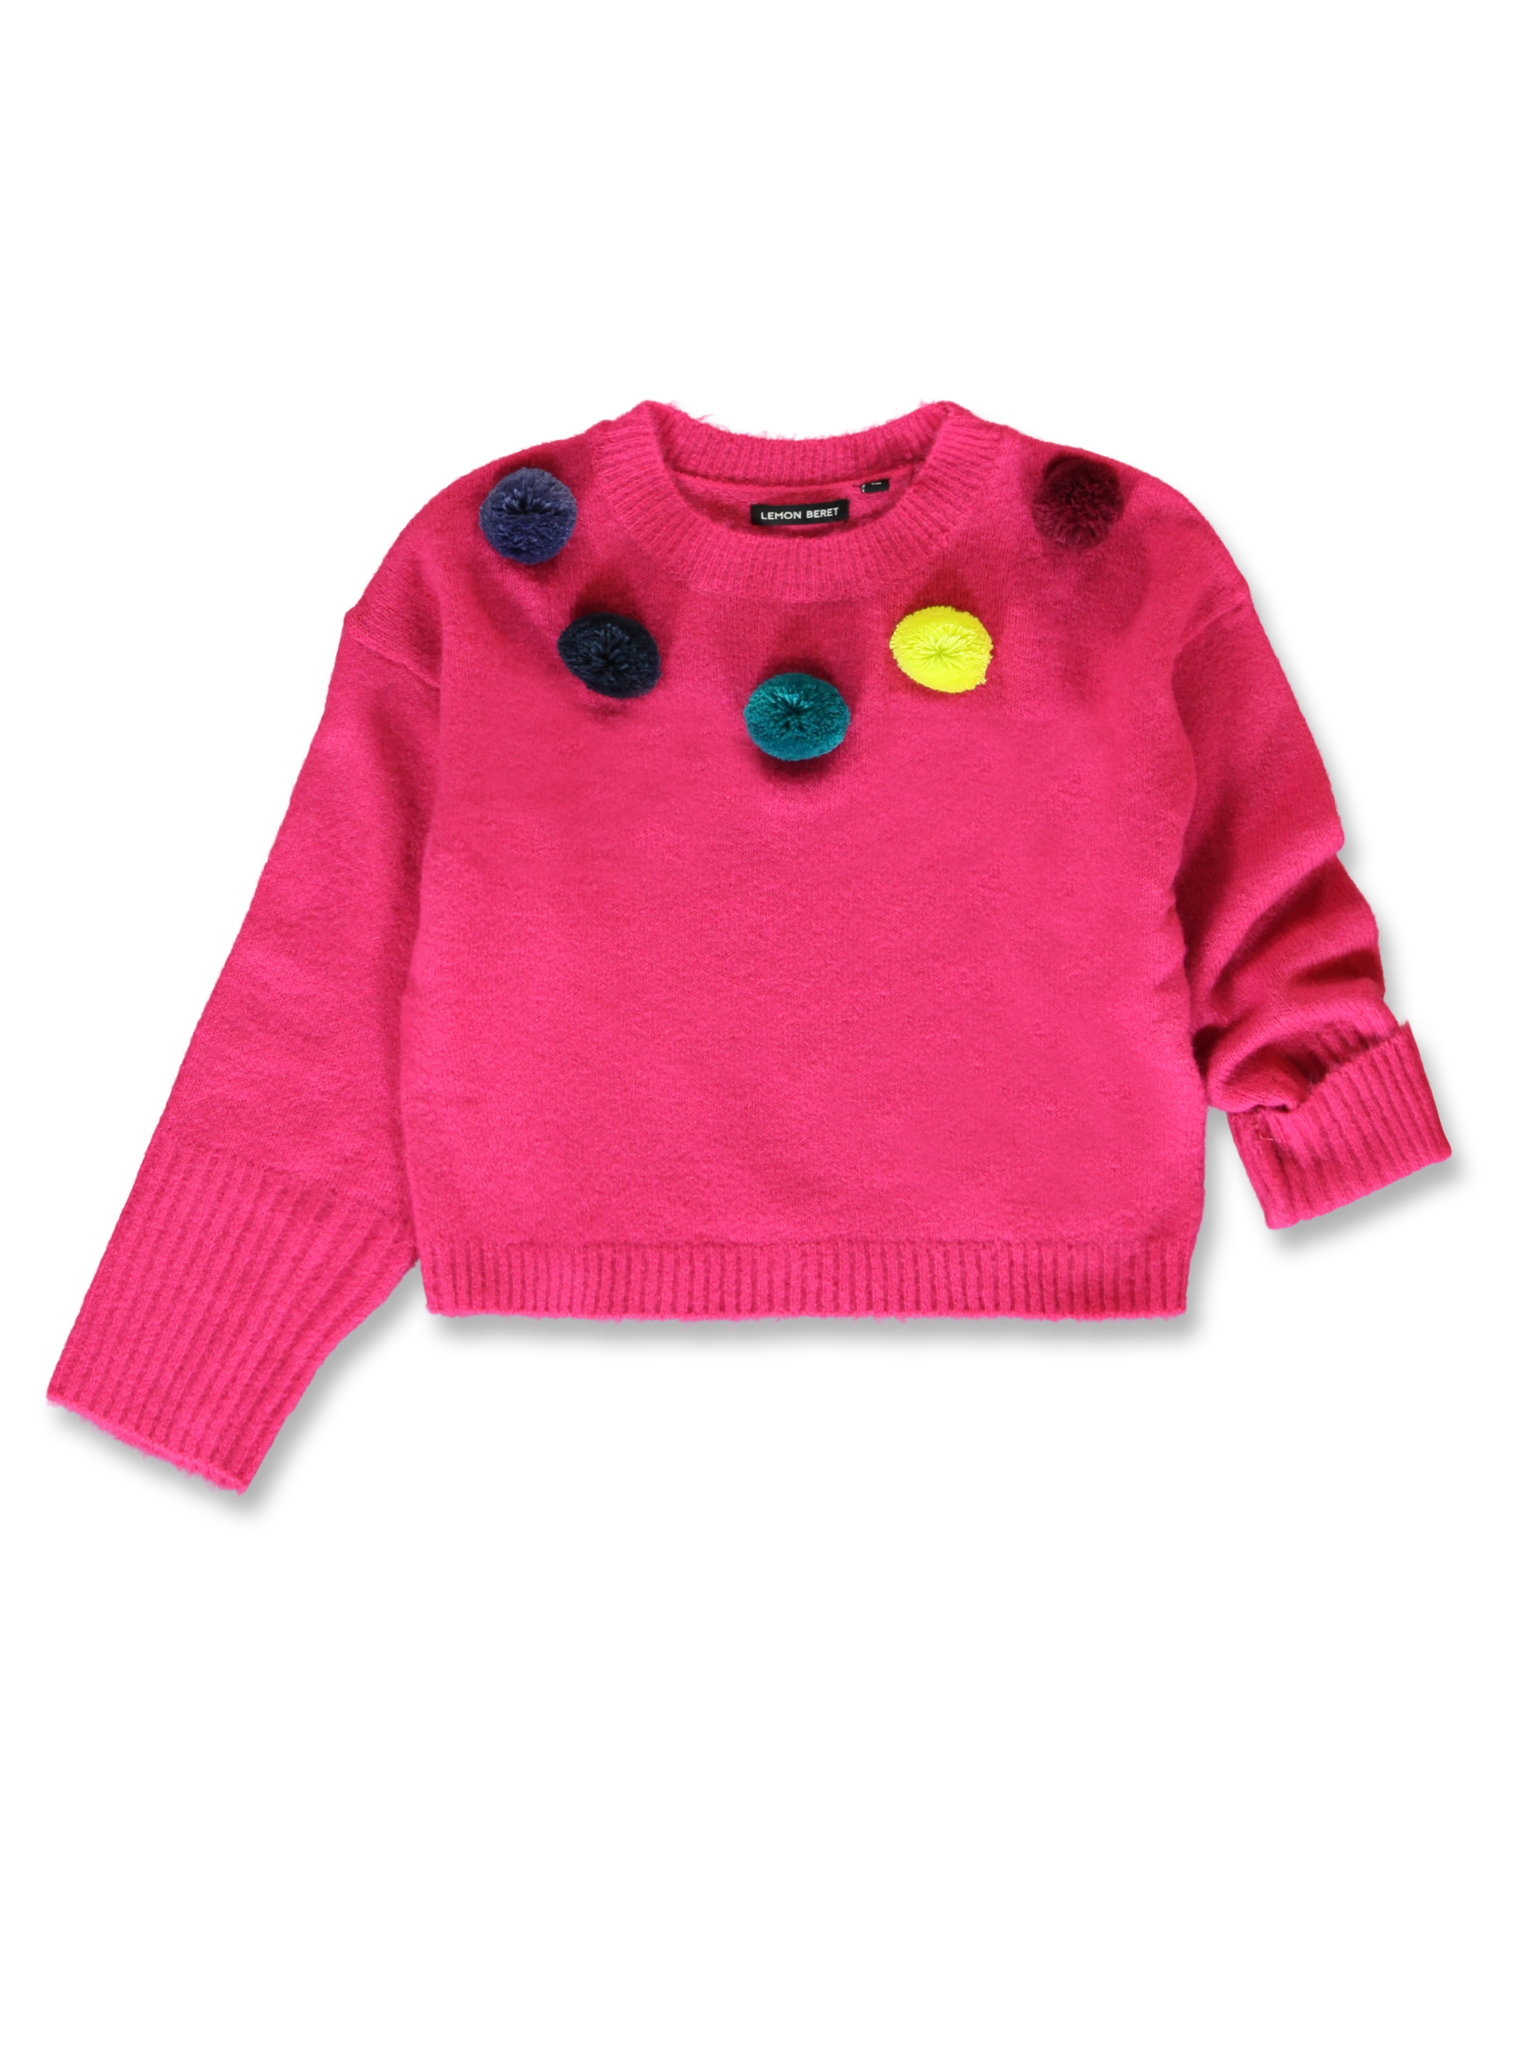 All Brands | Winterproducts Small Girls | Pull | 12 pcs/box